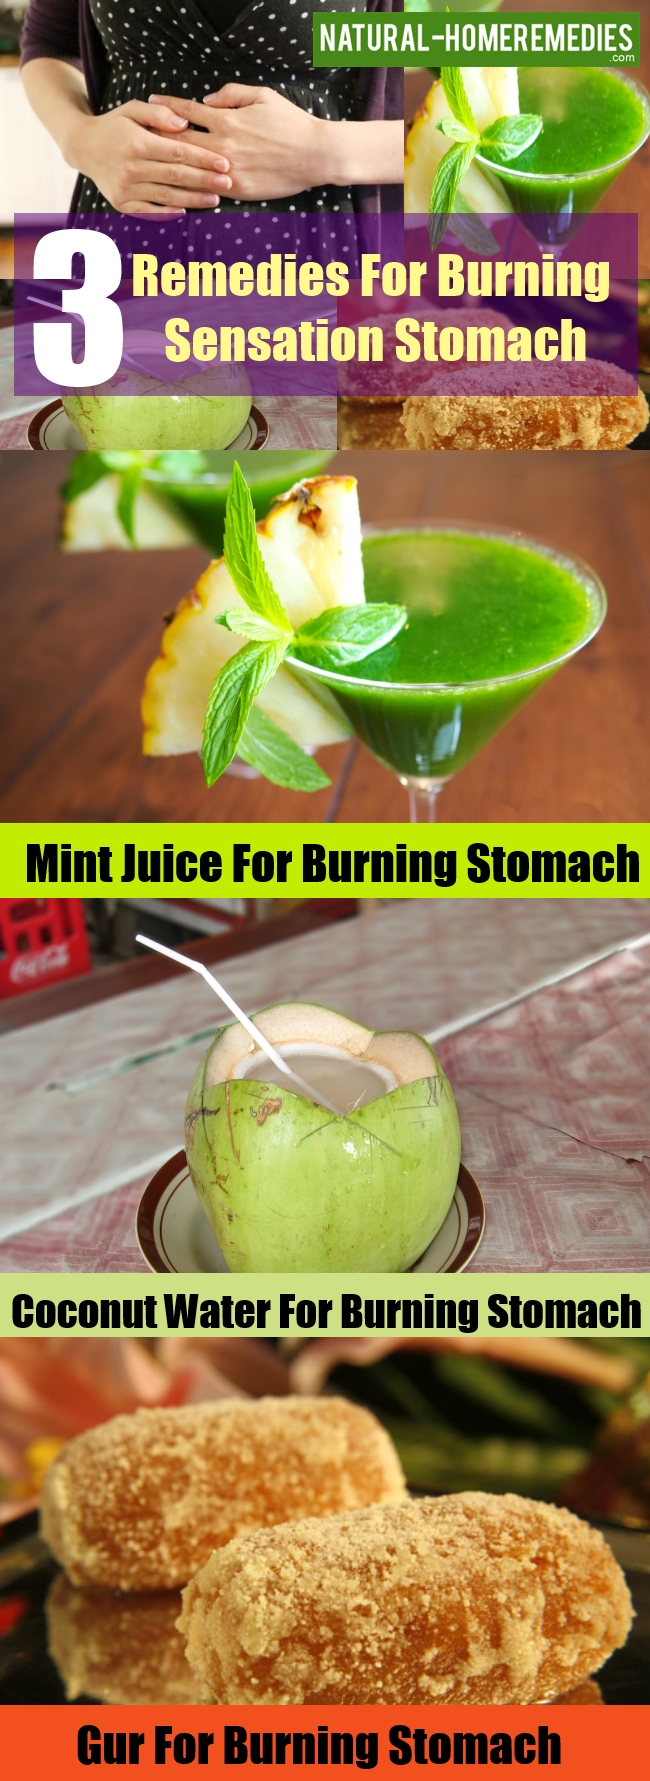 Get Rid Of That Burning Sensation In Your Stomach